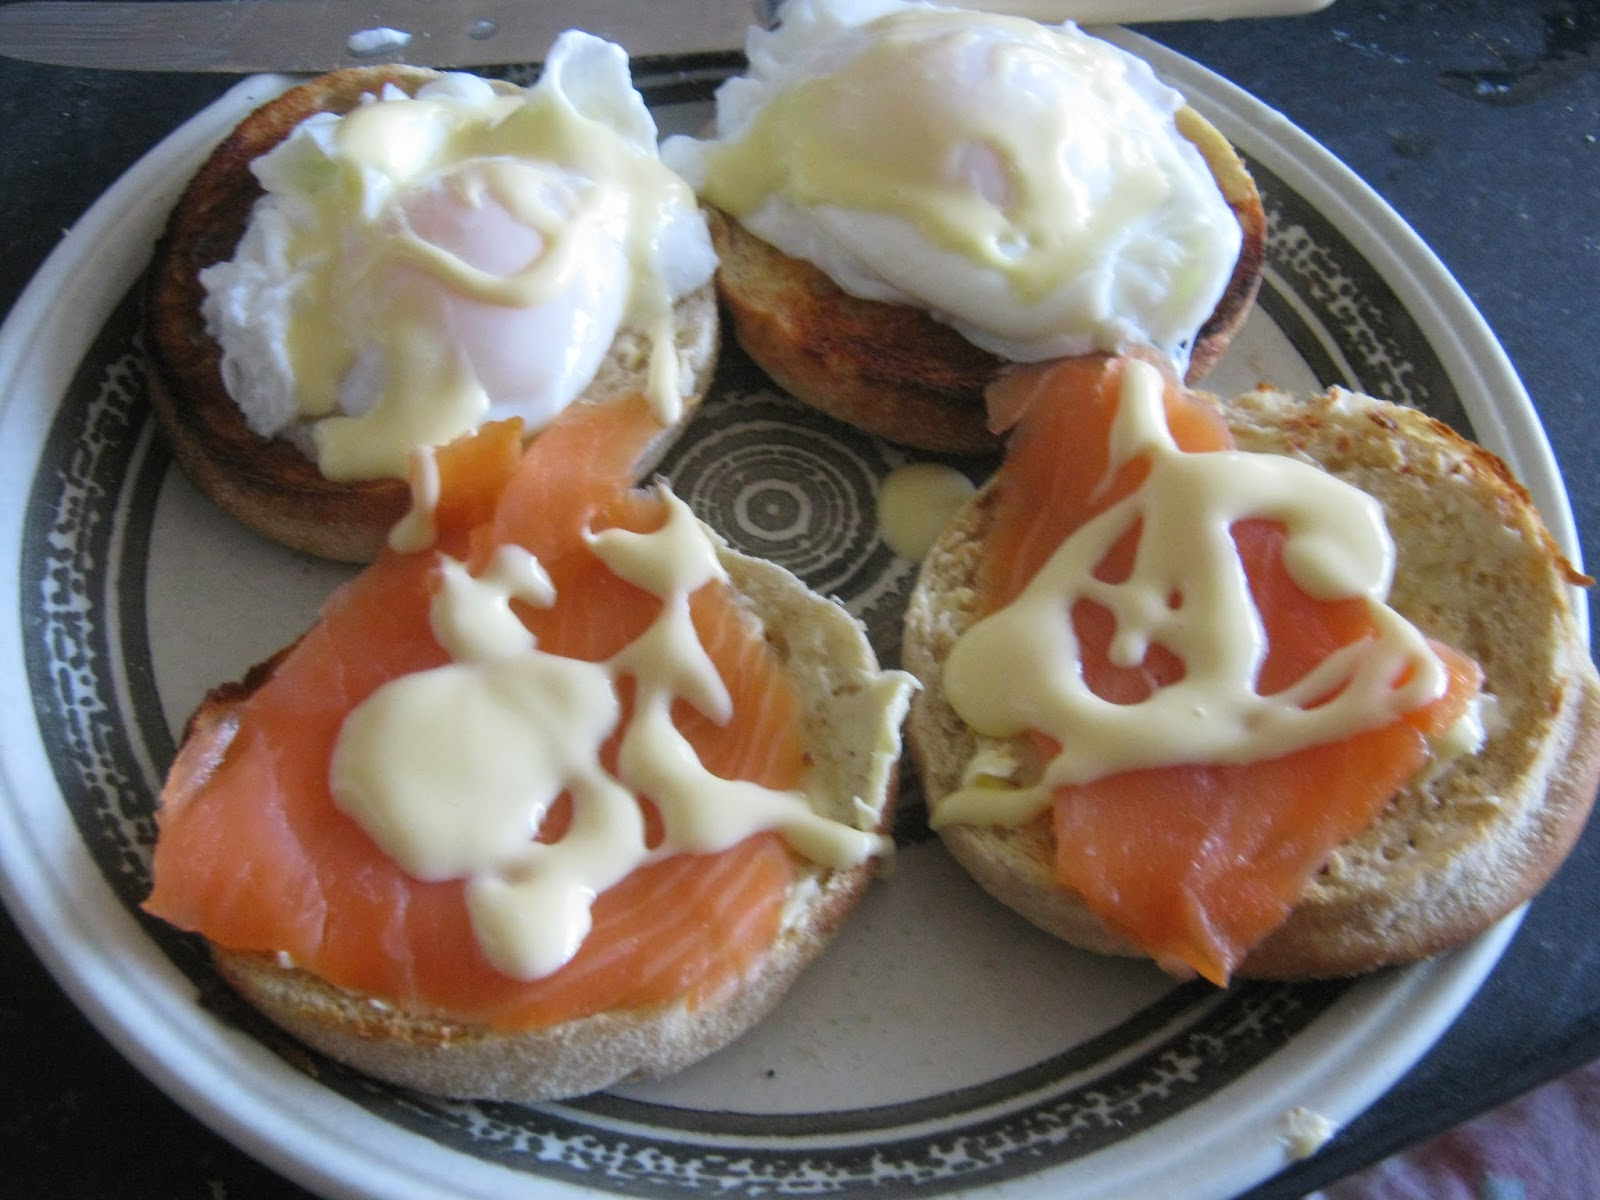 Eggs royale: English muffins topped with poached eggs, smoked salmon and hollandaise sauce